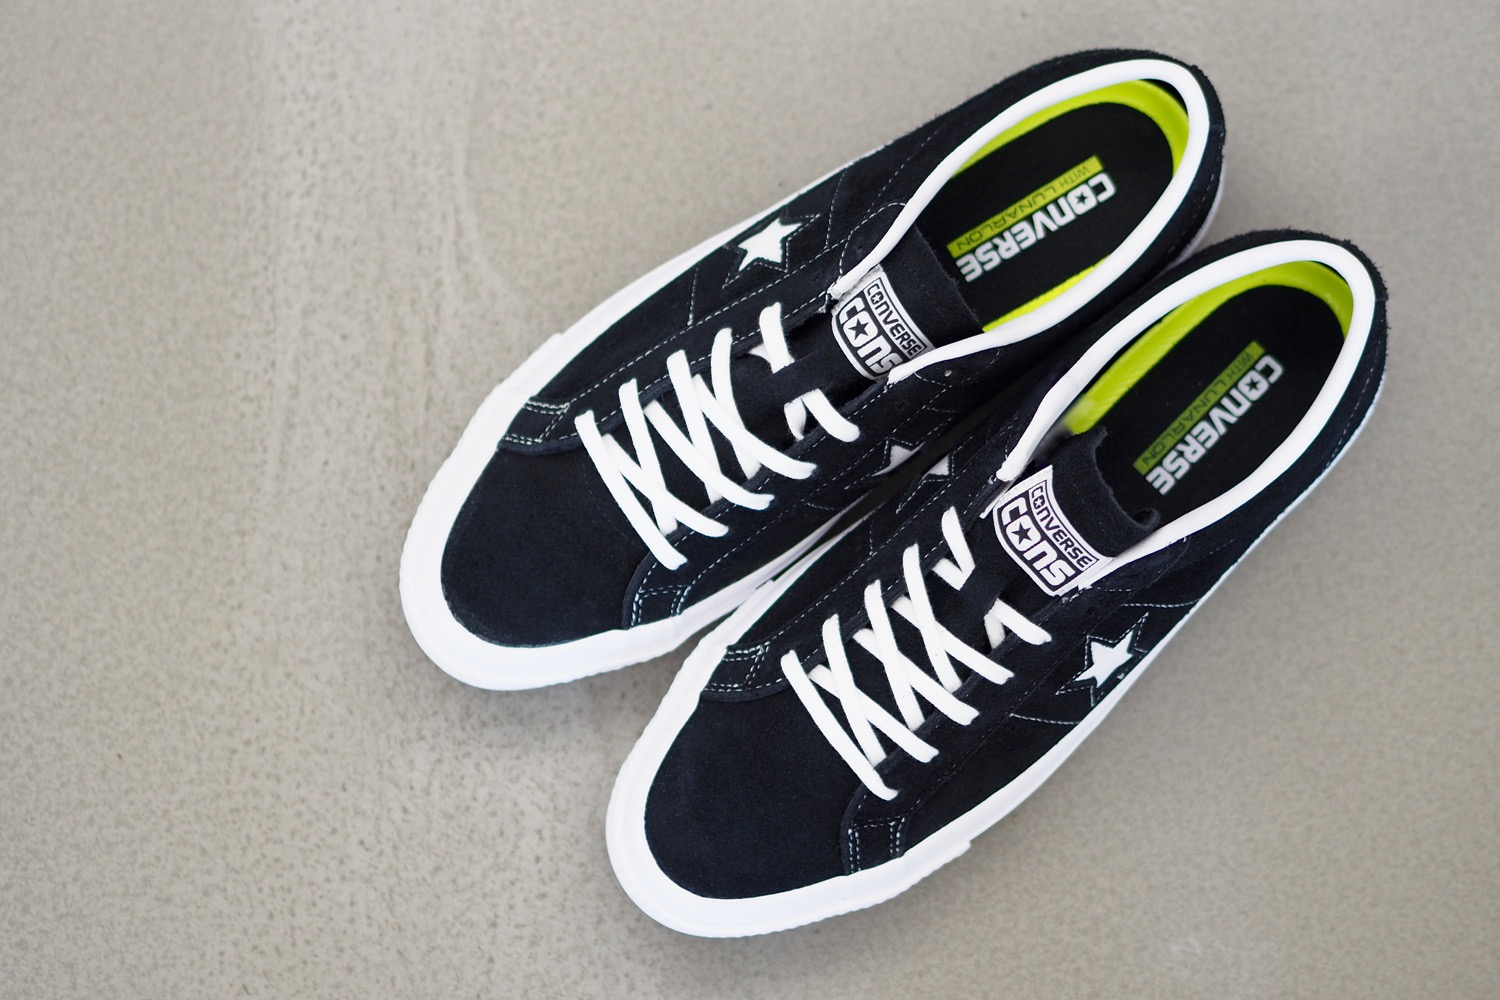 New Converse Cons One Star | The Range Receives A Modern Update